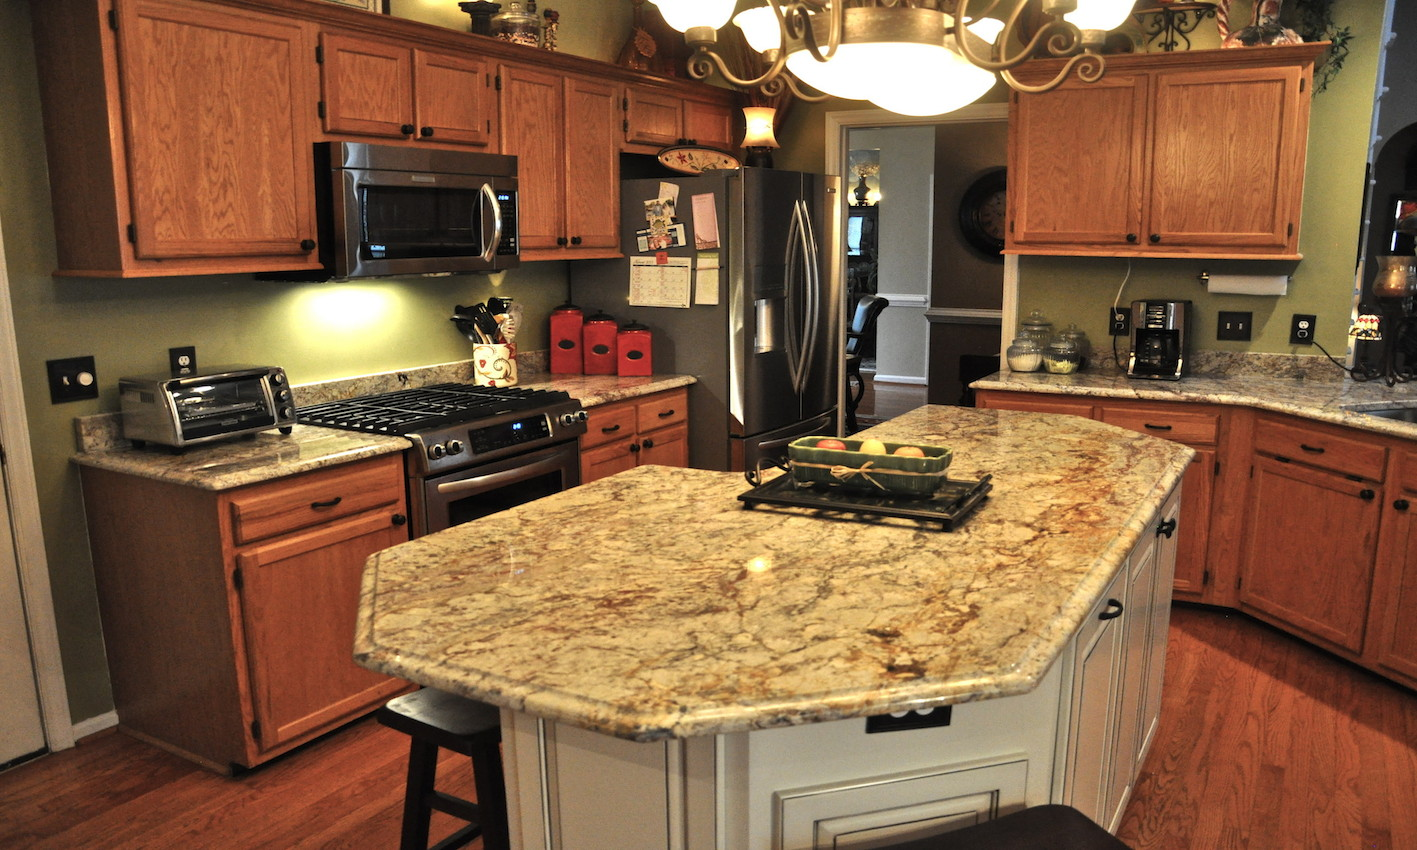 Typhoon bordeaux granite archives decor eye home for Granite countertop design ideas